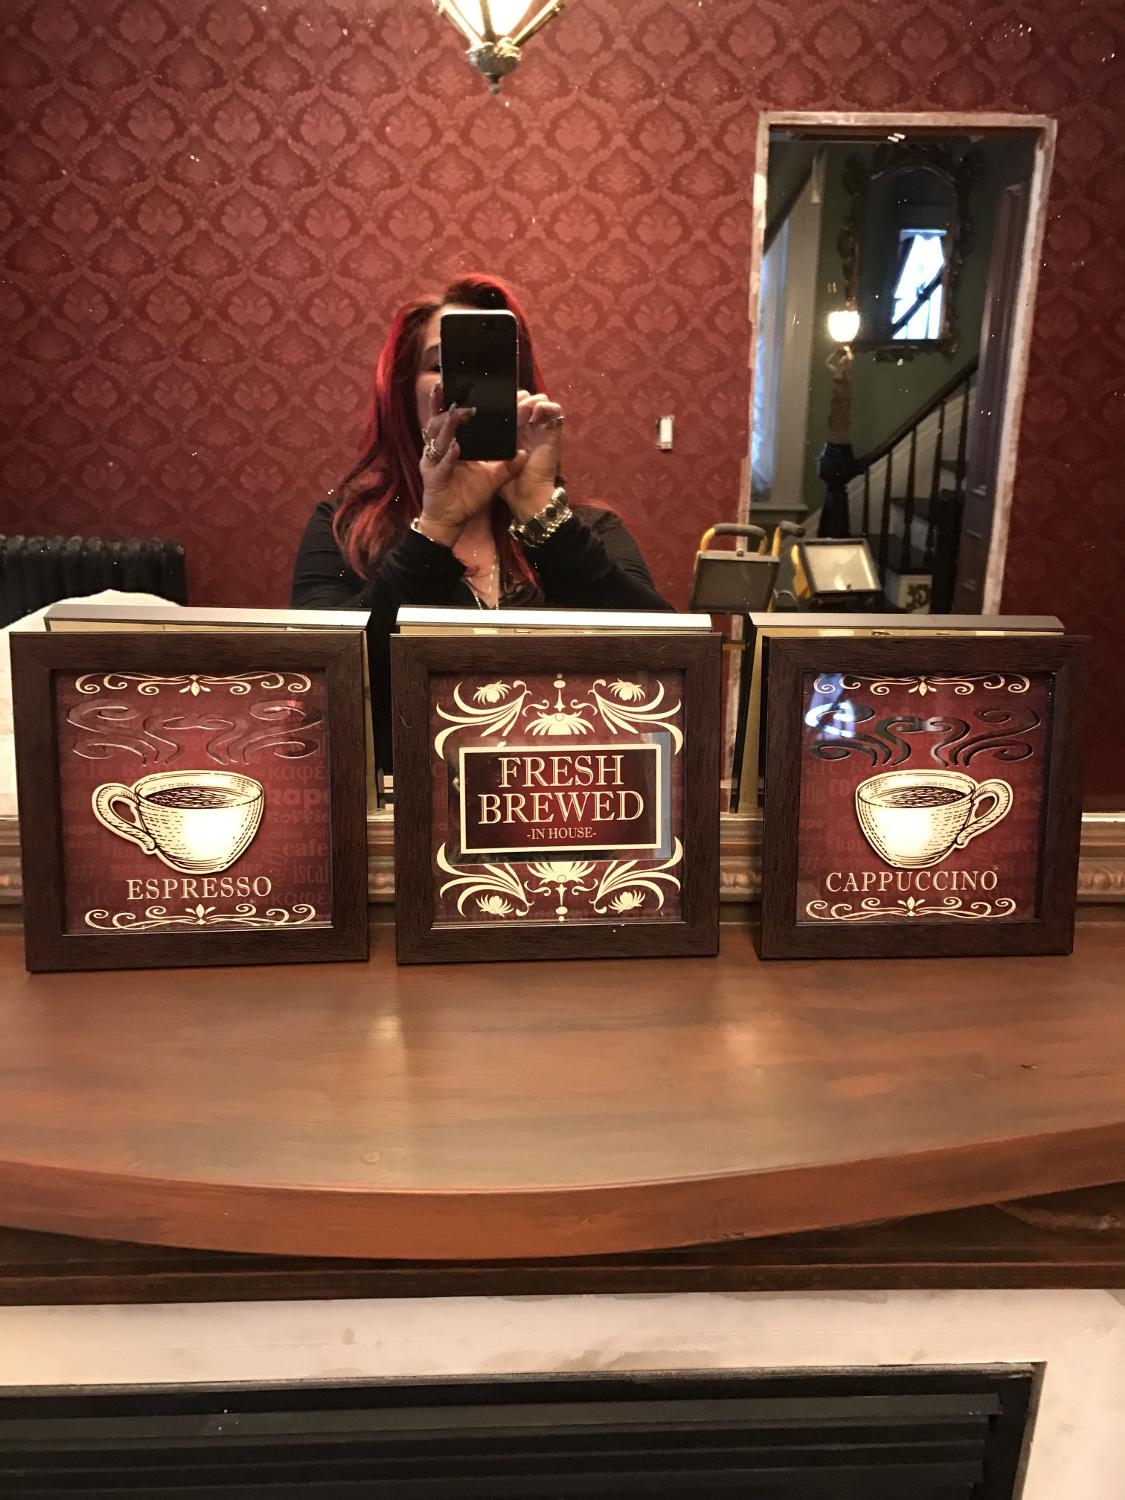 Best Set Of 3 Kitchen Or Coffee Bar Wall Plaques Mirror Inserts For Sale In Etobicoke Ontario